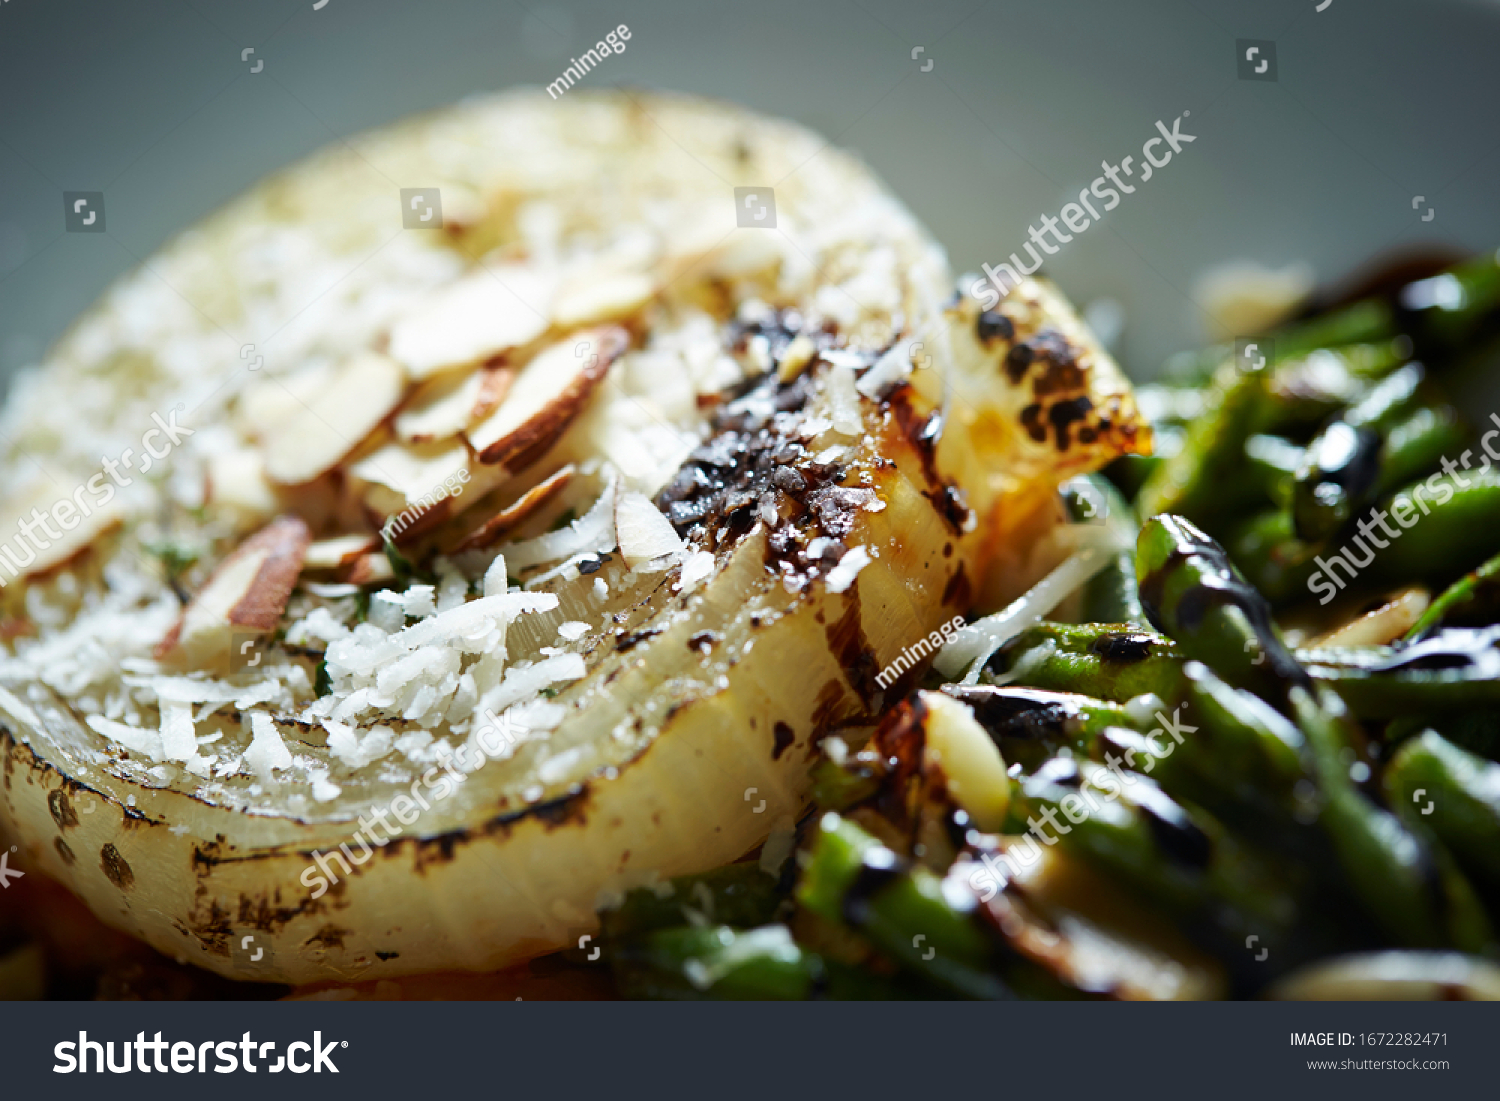 Grilled onion with cheese and almond nuts  #1672282471